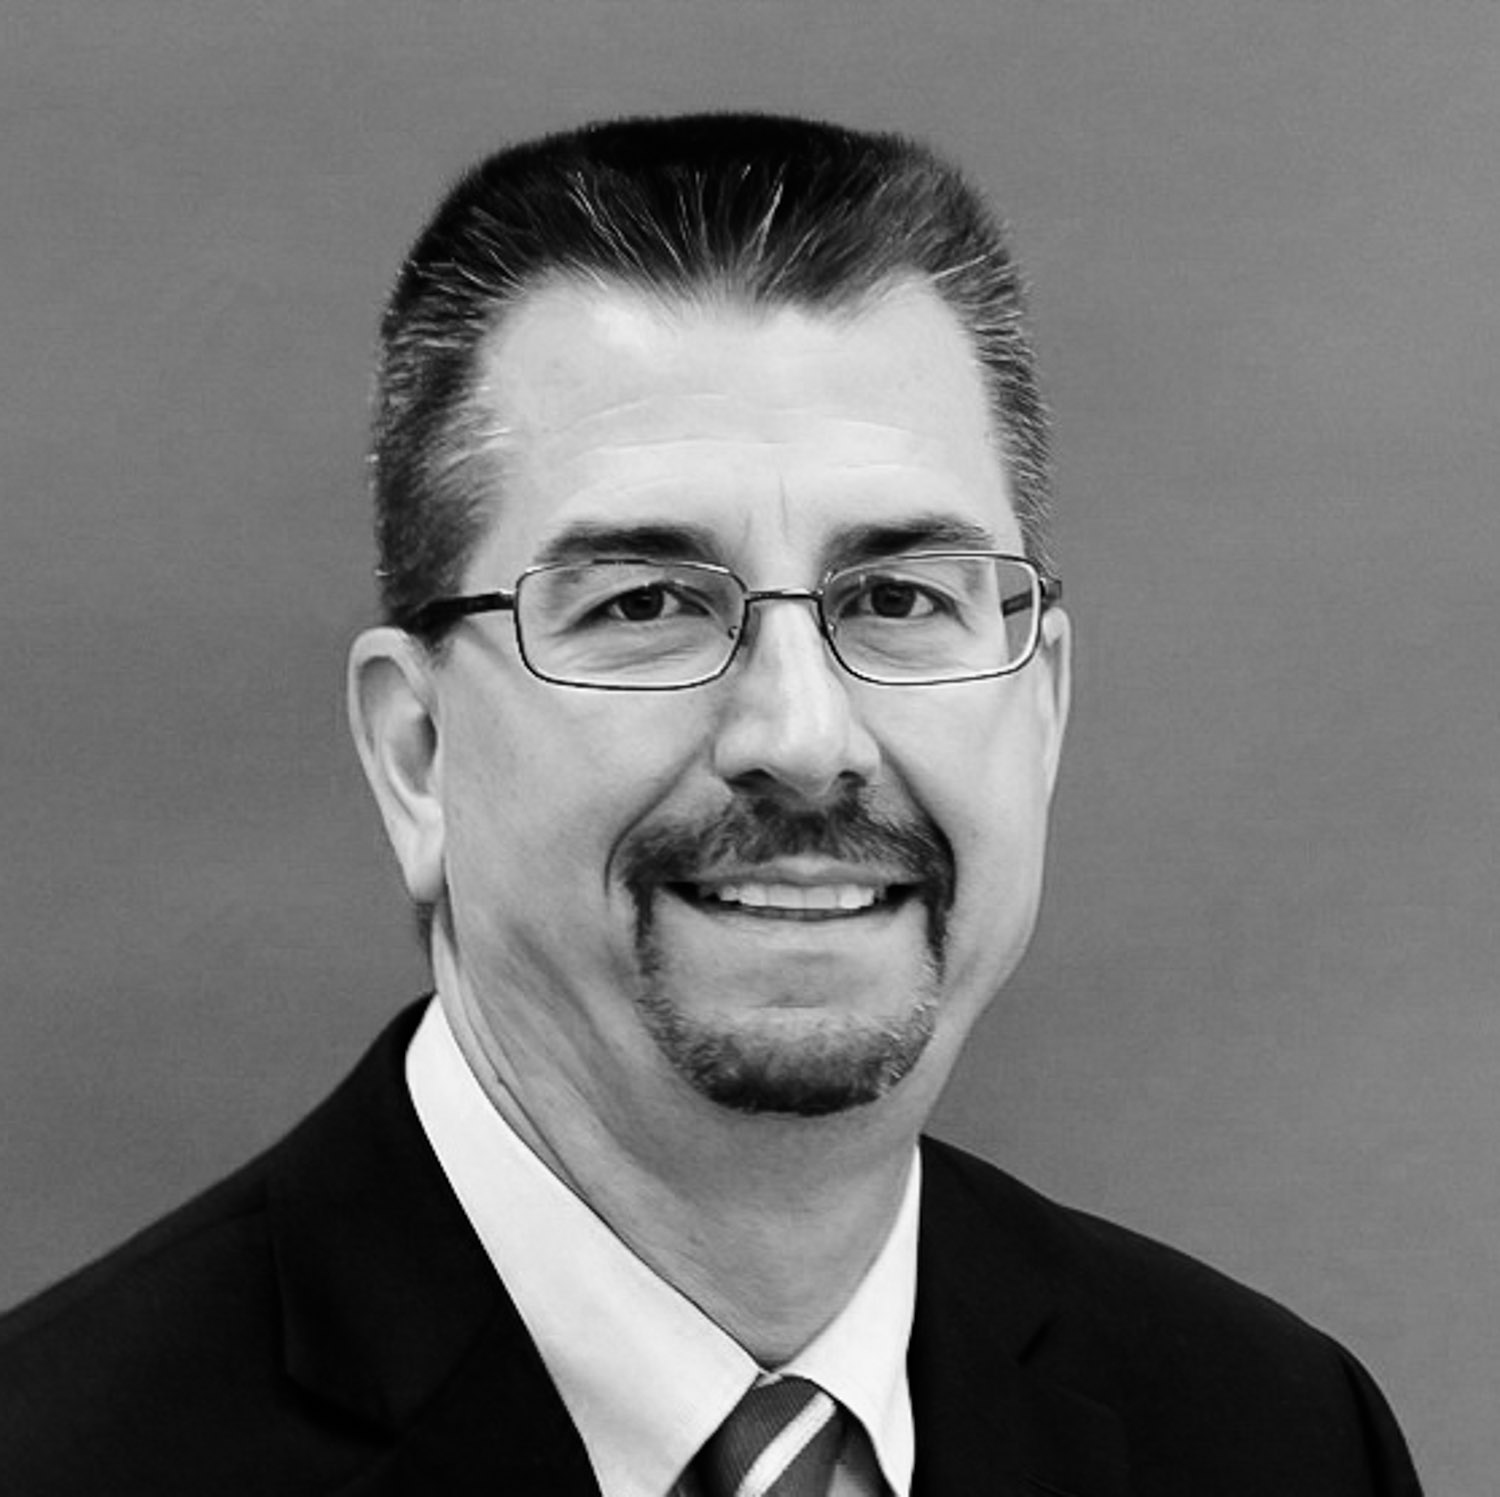 Jeffery Pulse - (STM, Concordia Theological Seminary, Fort Wayne, IN) is Associate Professor of Exegetical Theology, director of Certification and Placement, and Director of Continuing Education at Concordia Theological Seminary in Fort Wayne, IN. He is currently a Ph.D.